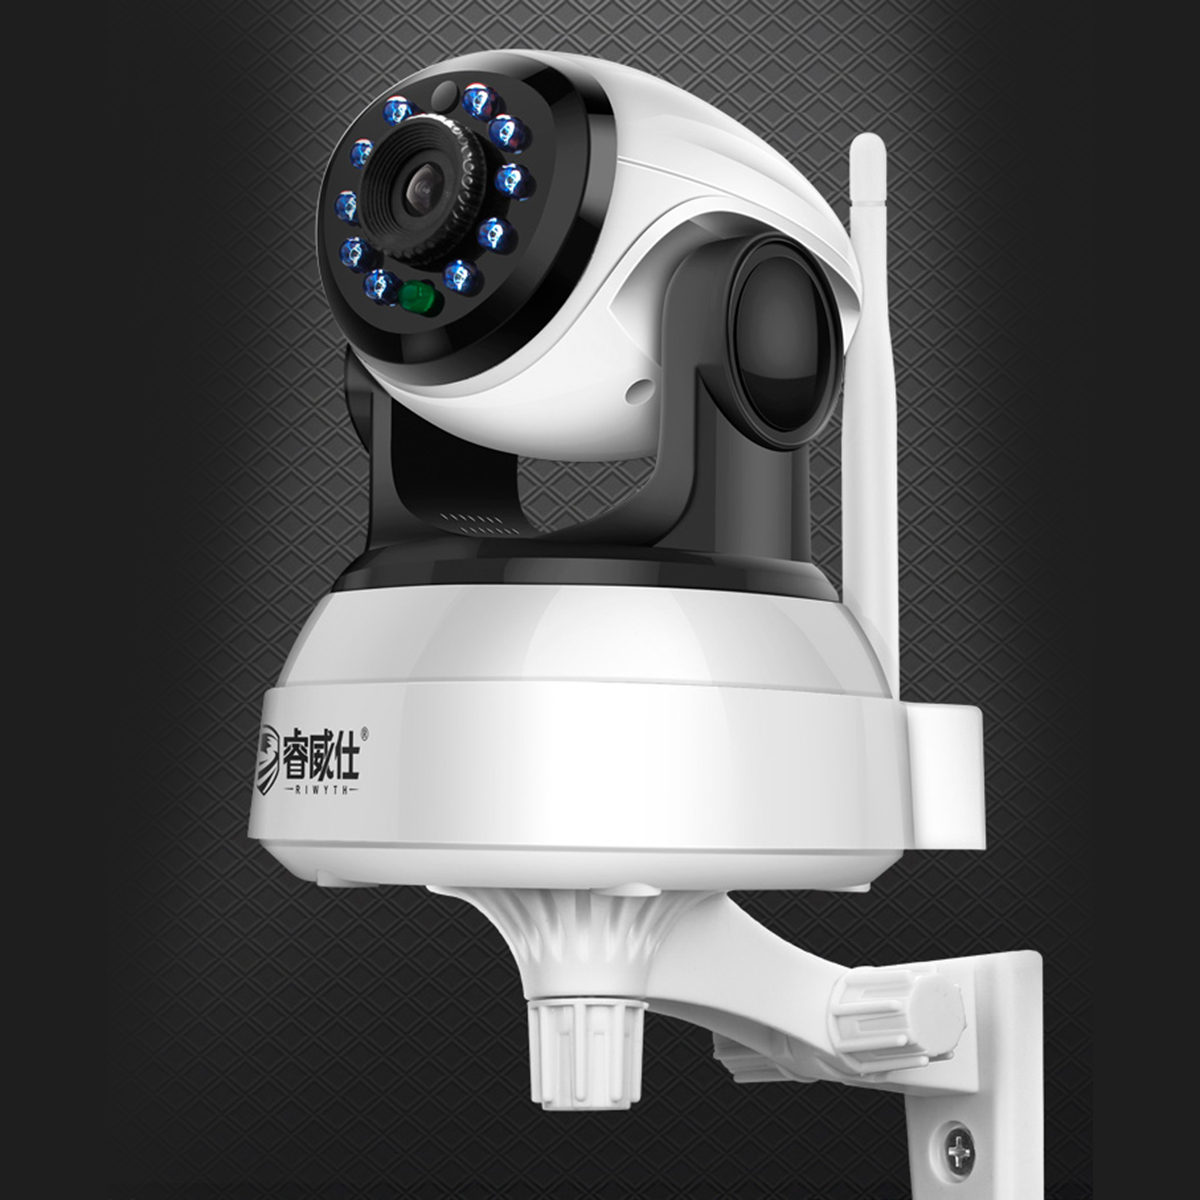 SOONHUA Wireless Home Security IP Camera Smart WiFi Camera Two Way Audio Baby Monitor Surveillance HD Mini CCTV CameraSOONHUA Wireless Home Security IP Camera Smart WiFi Camera Two Way Audio Baby Monitor Surveillance HD Mini CCTV Camera